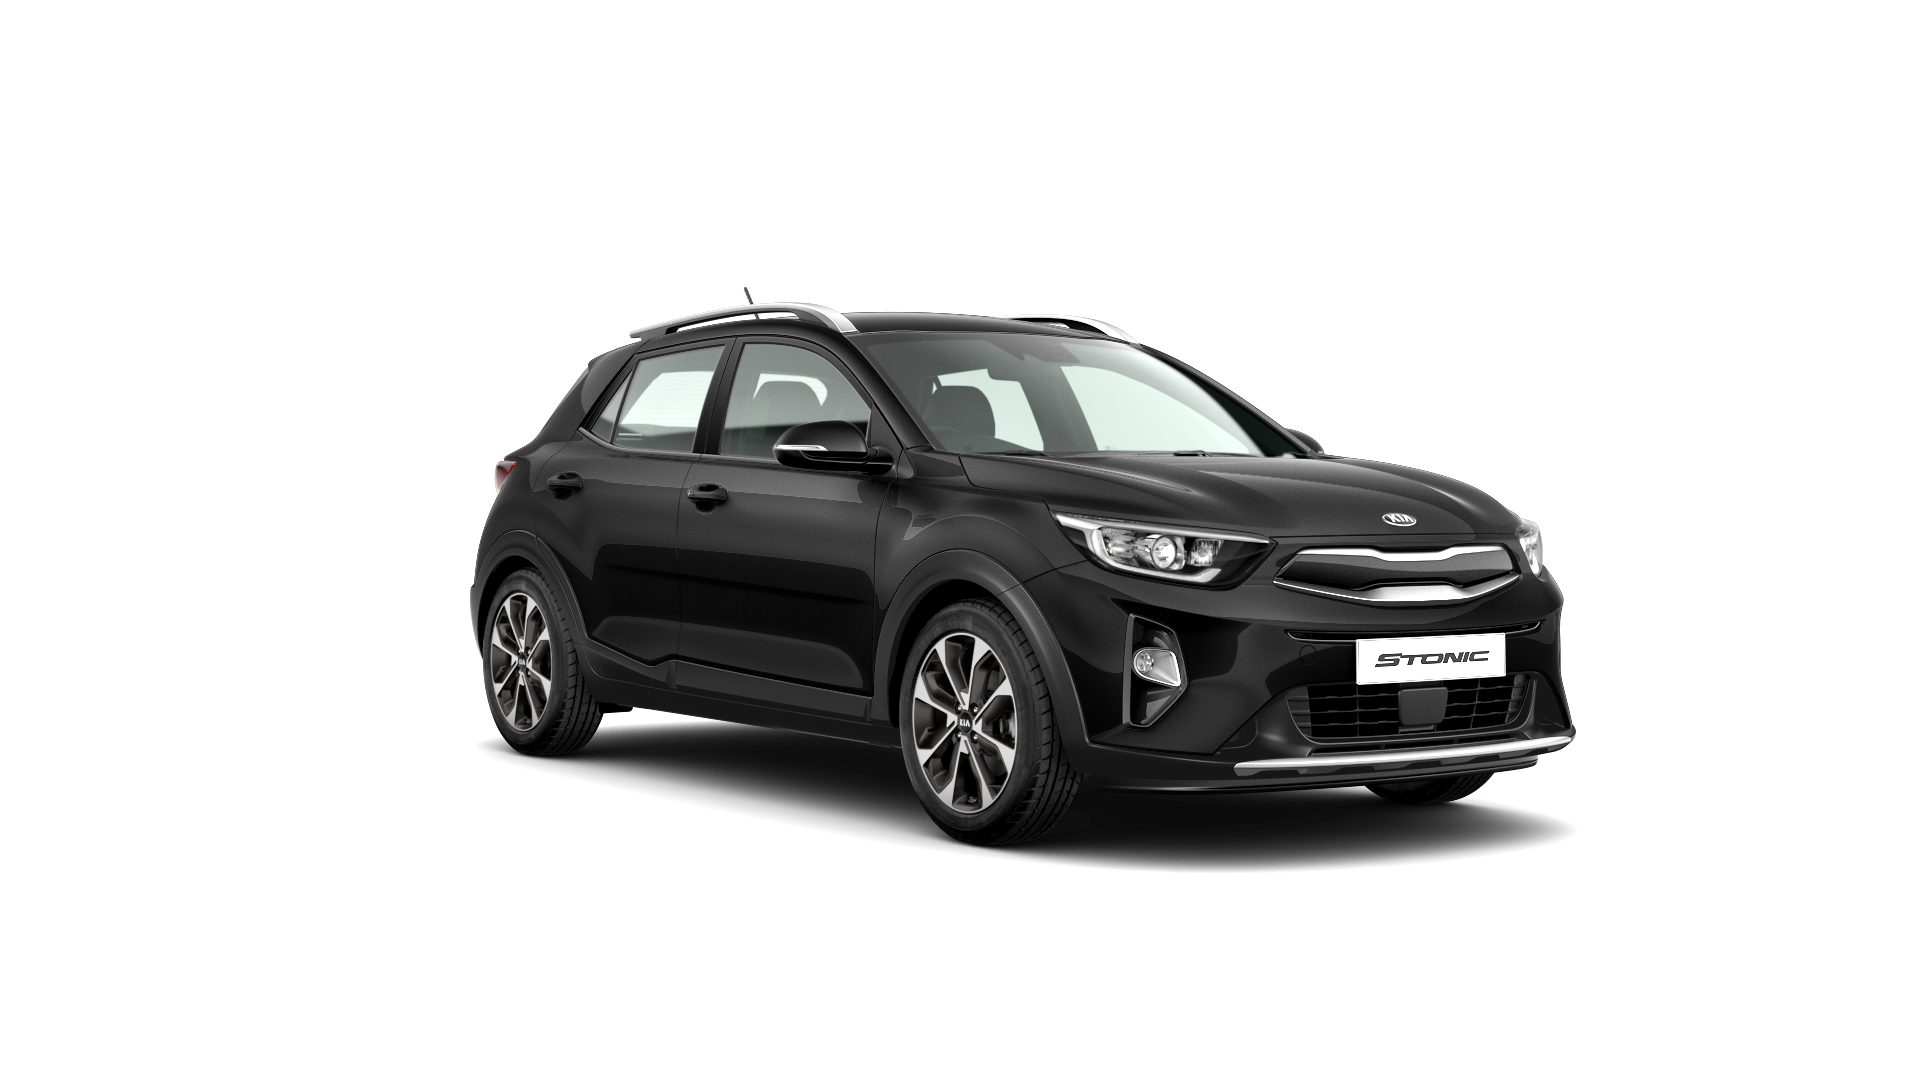 Kia Stonic Midnight Black